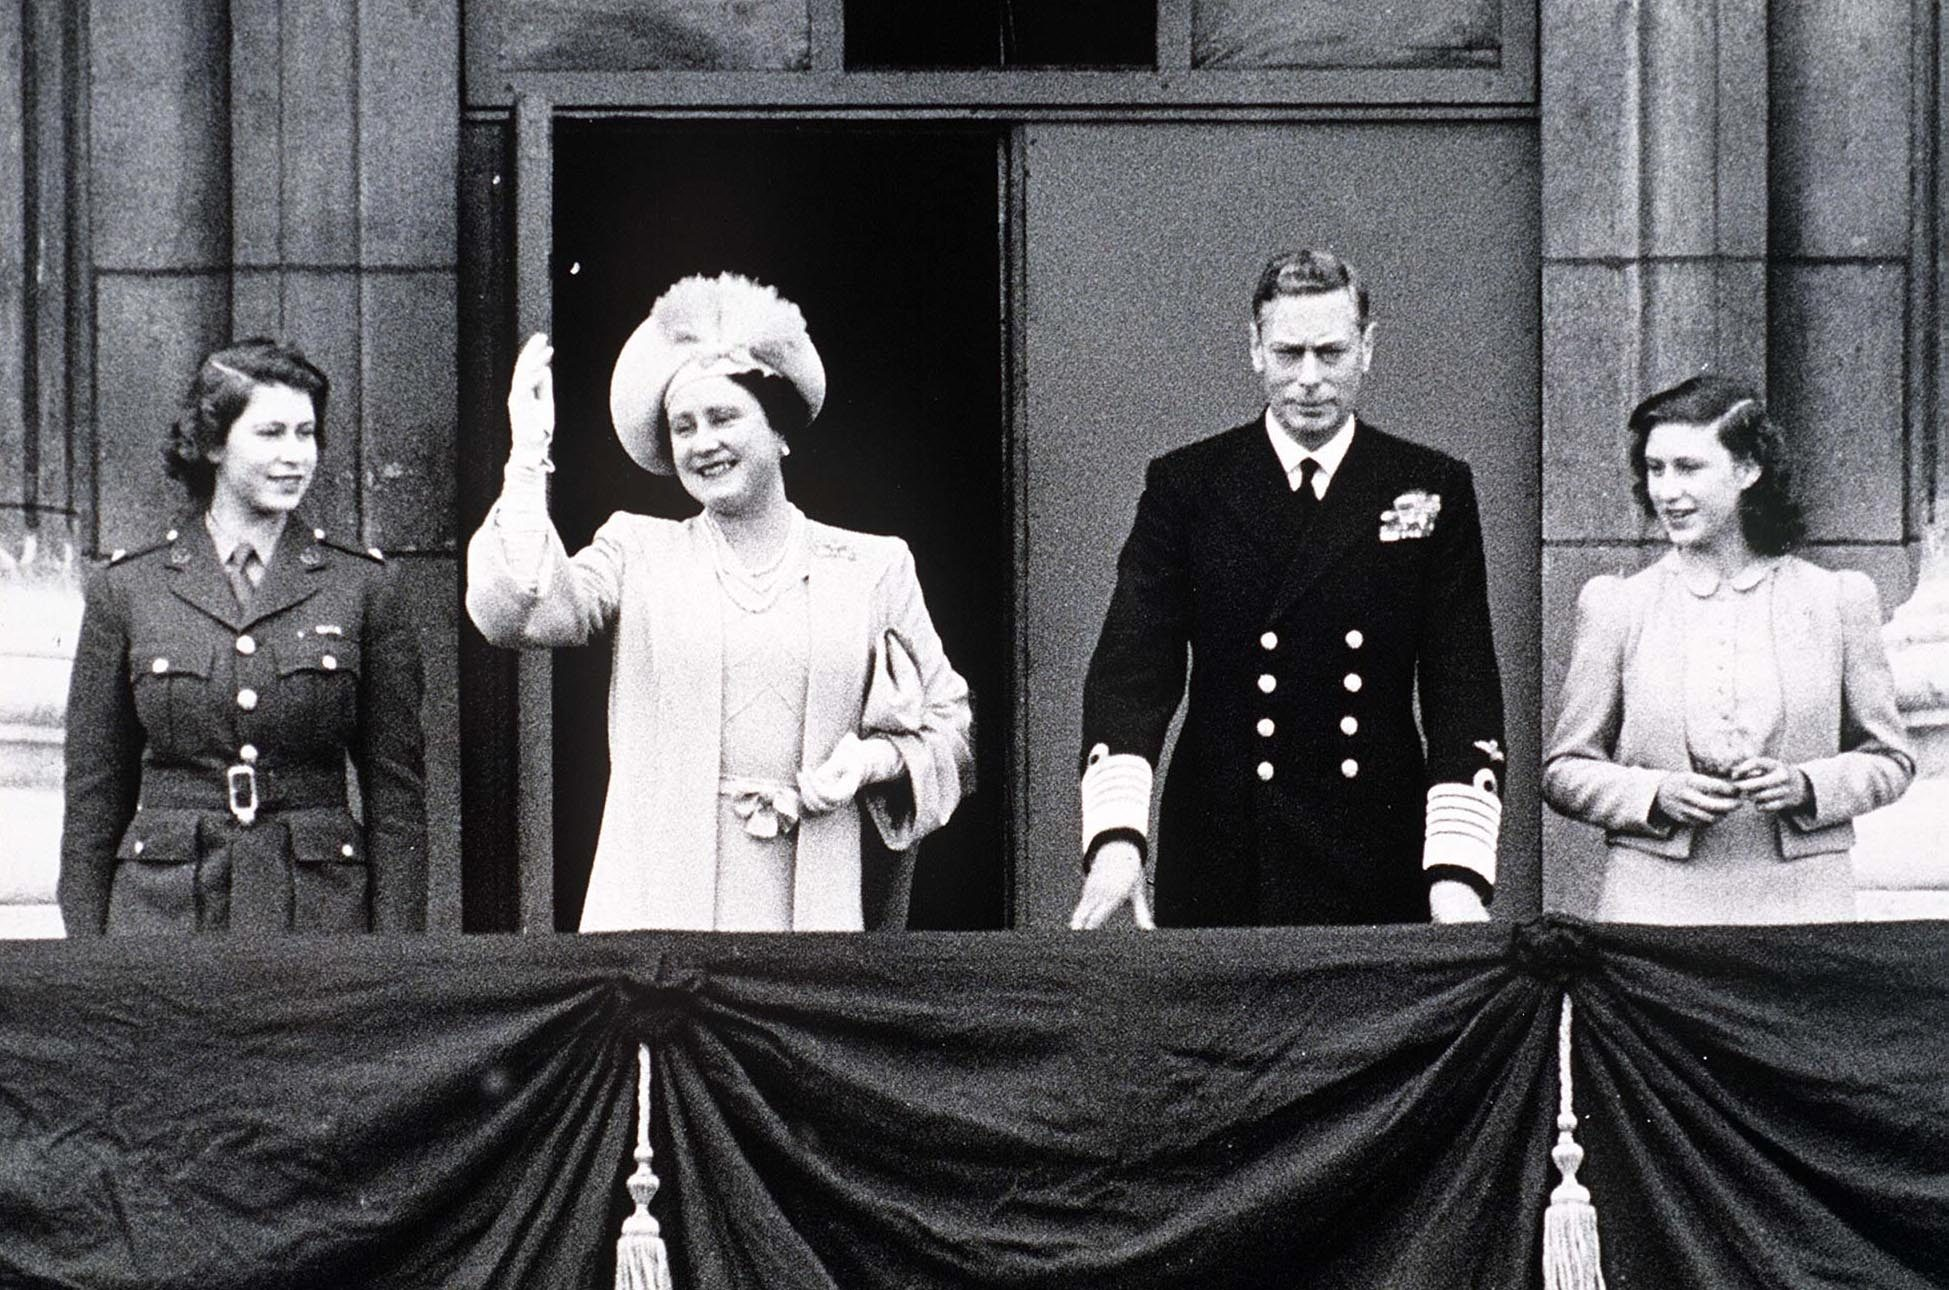 BRITISH ROYAL FAMILY ON THE BALCONY OF BUCKINGHAM PALACE - CIRCA 1945